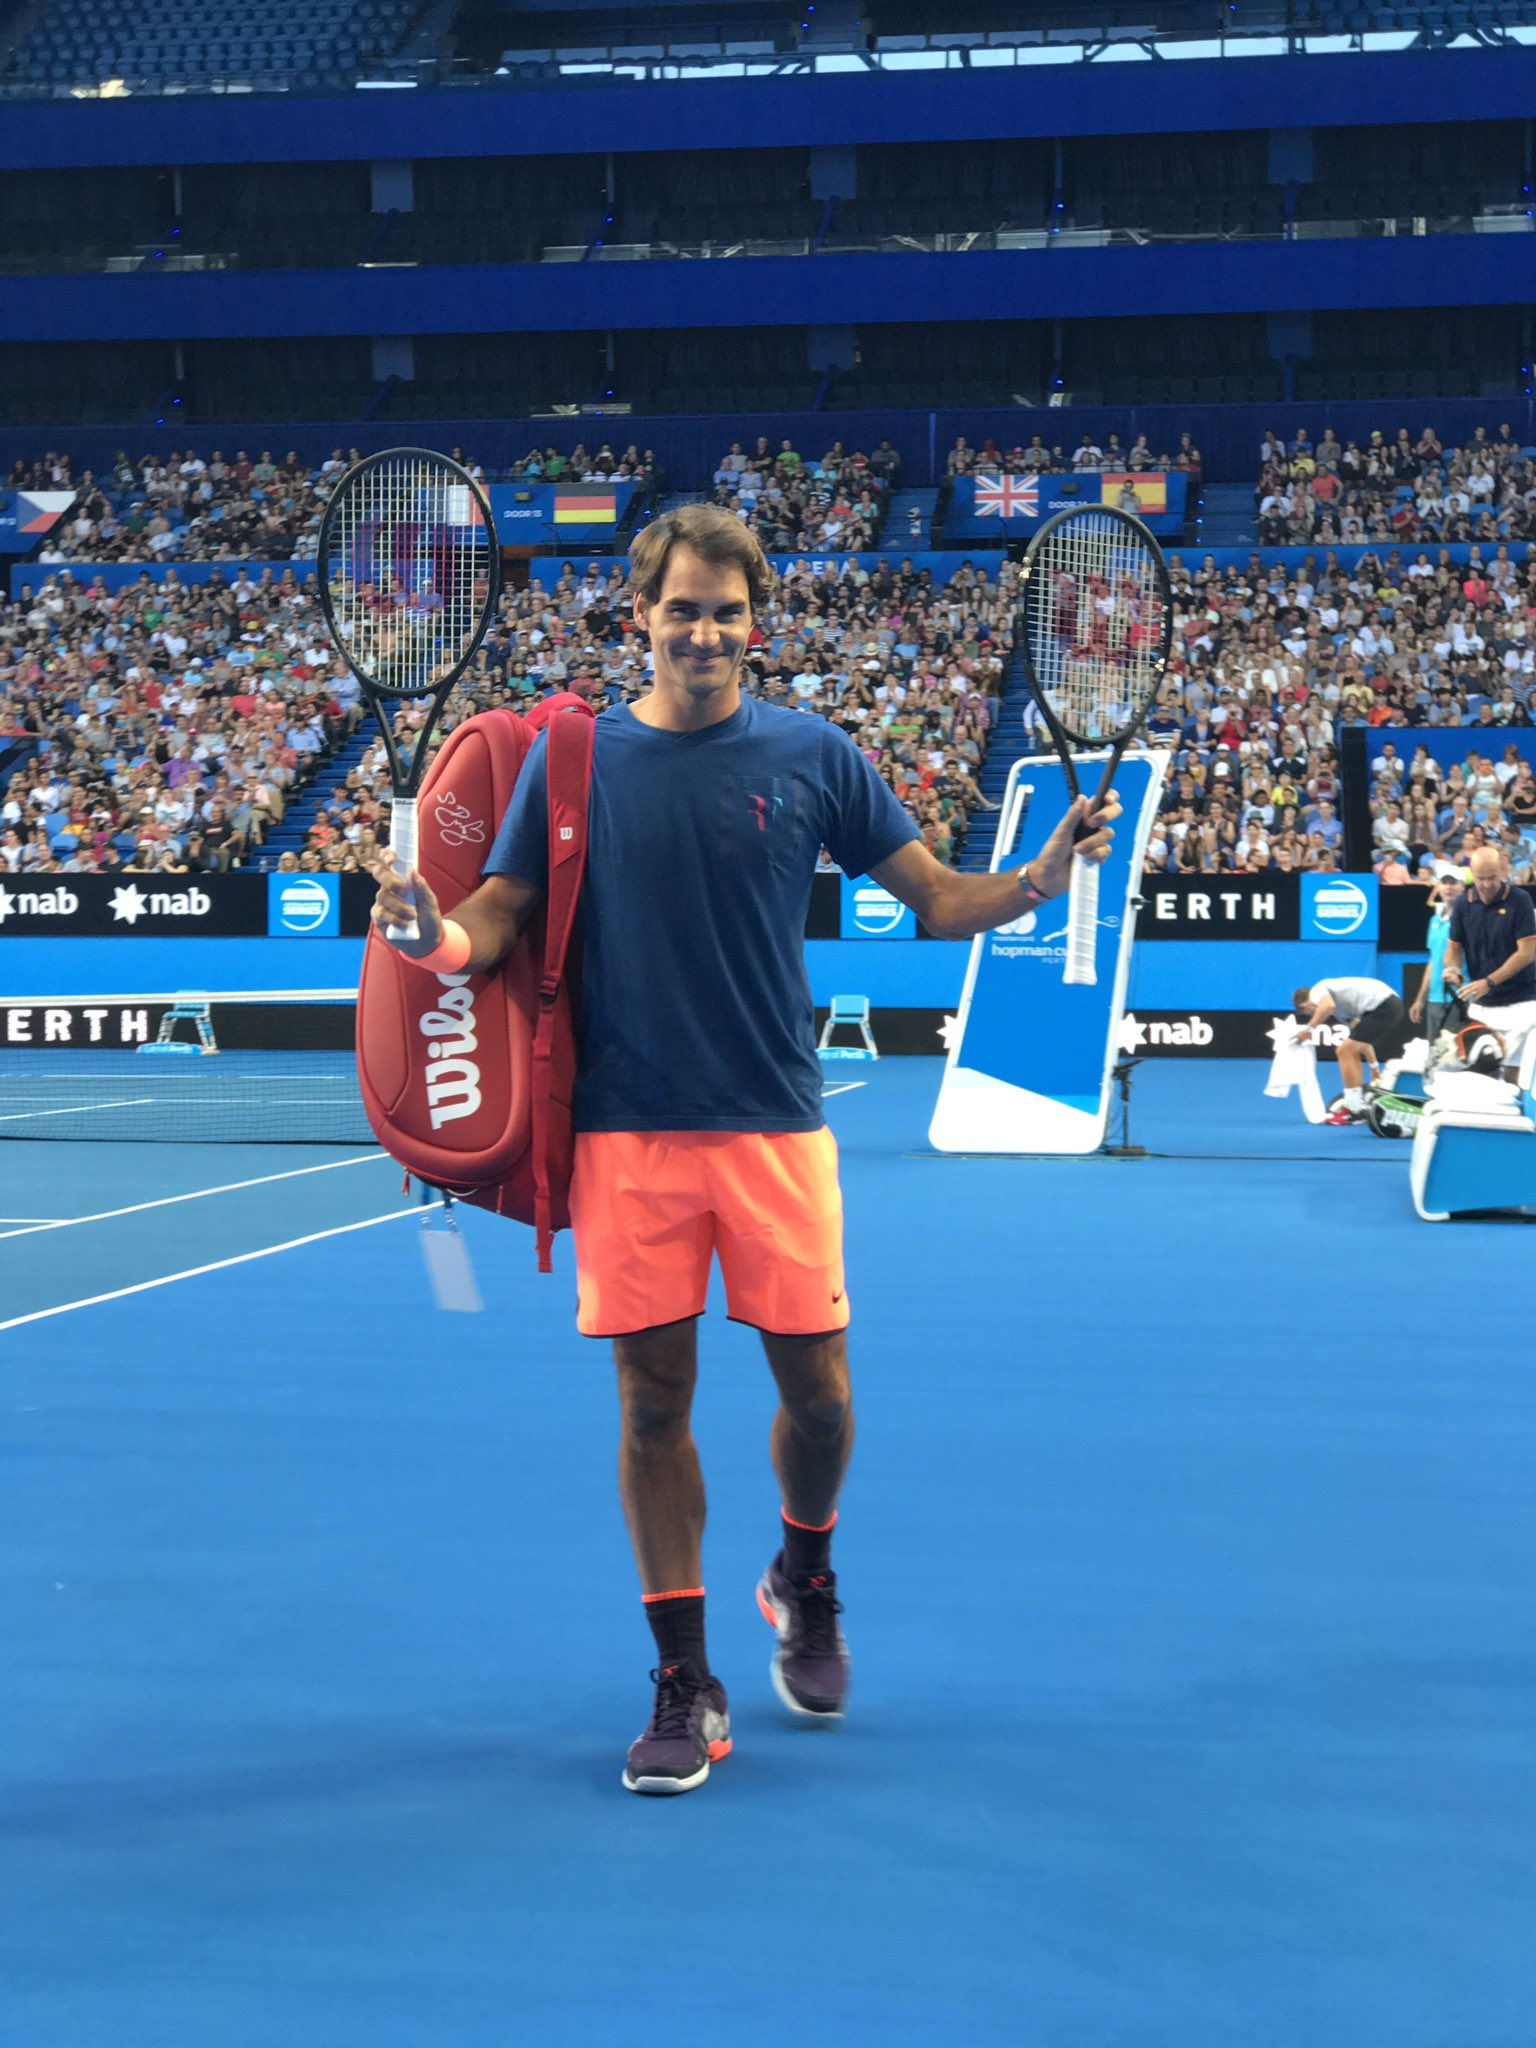 Thank you to the six thousand fans that showed up to watch my practice at @hopmancup ������ https://t.co/gzfNwGHcOp